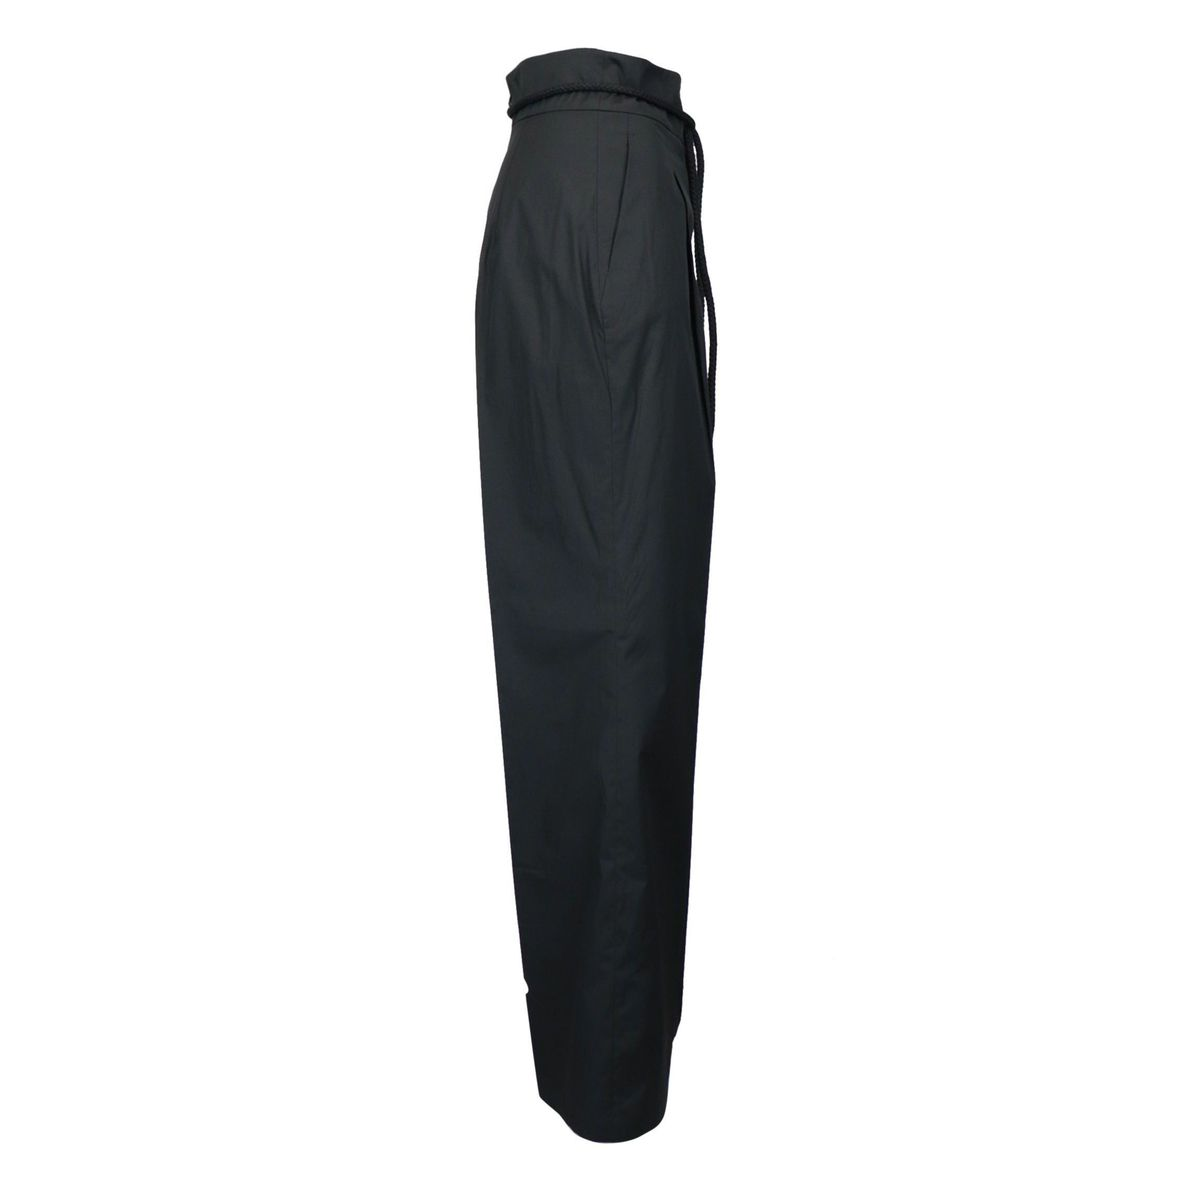 Opal trousers in cotton poplin with high waist and wide bottom Black MAX MARA STUDIO